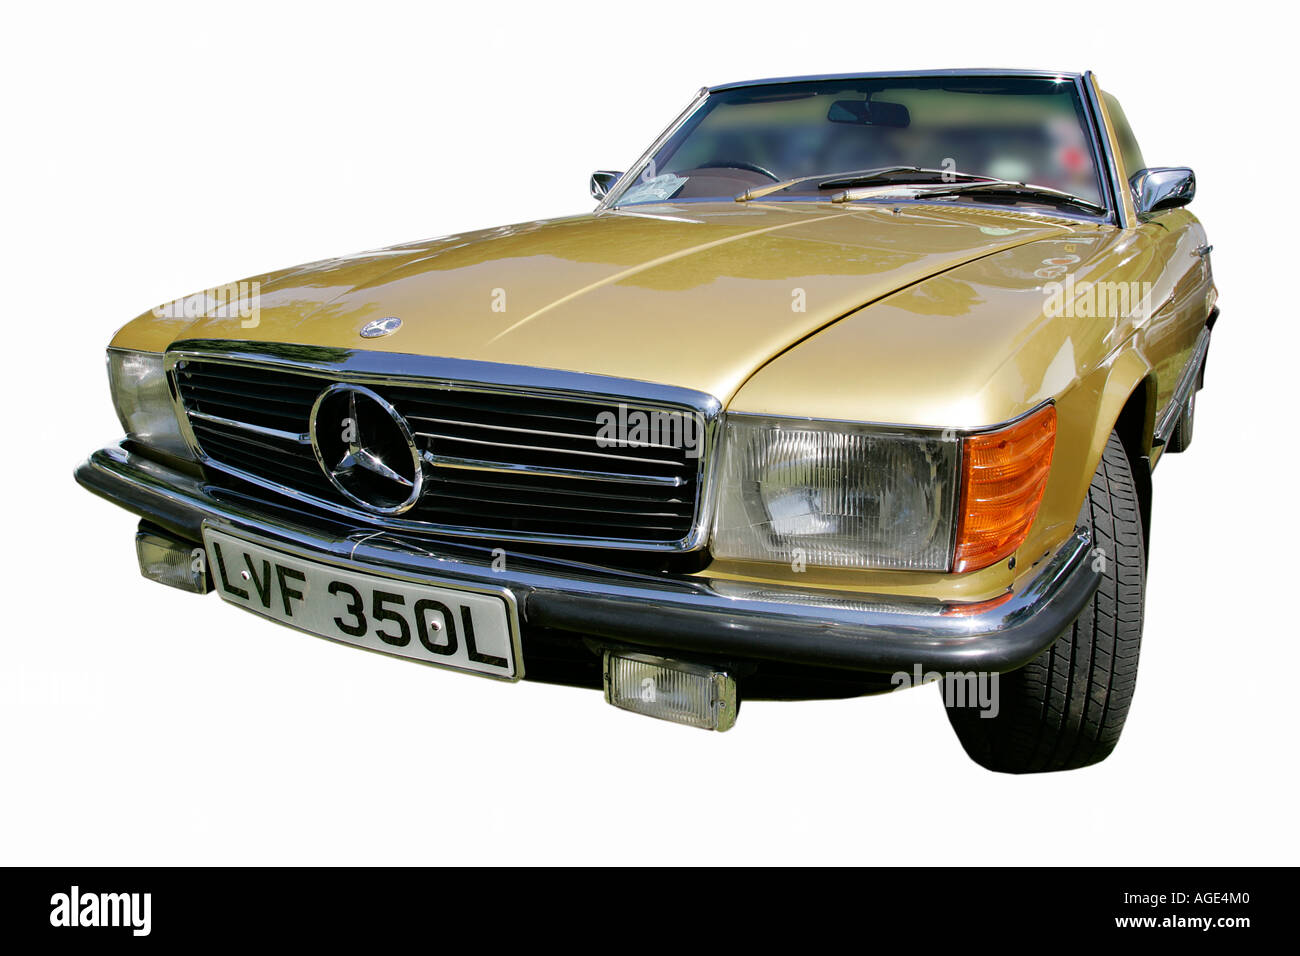 classic car Mercedes Benz old history vehicle vintage antipodes ...